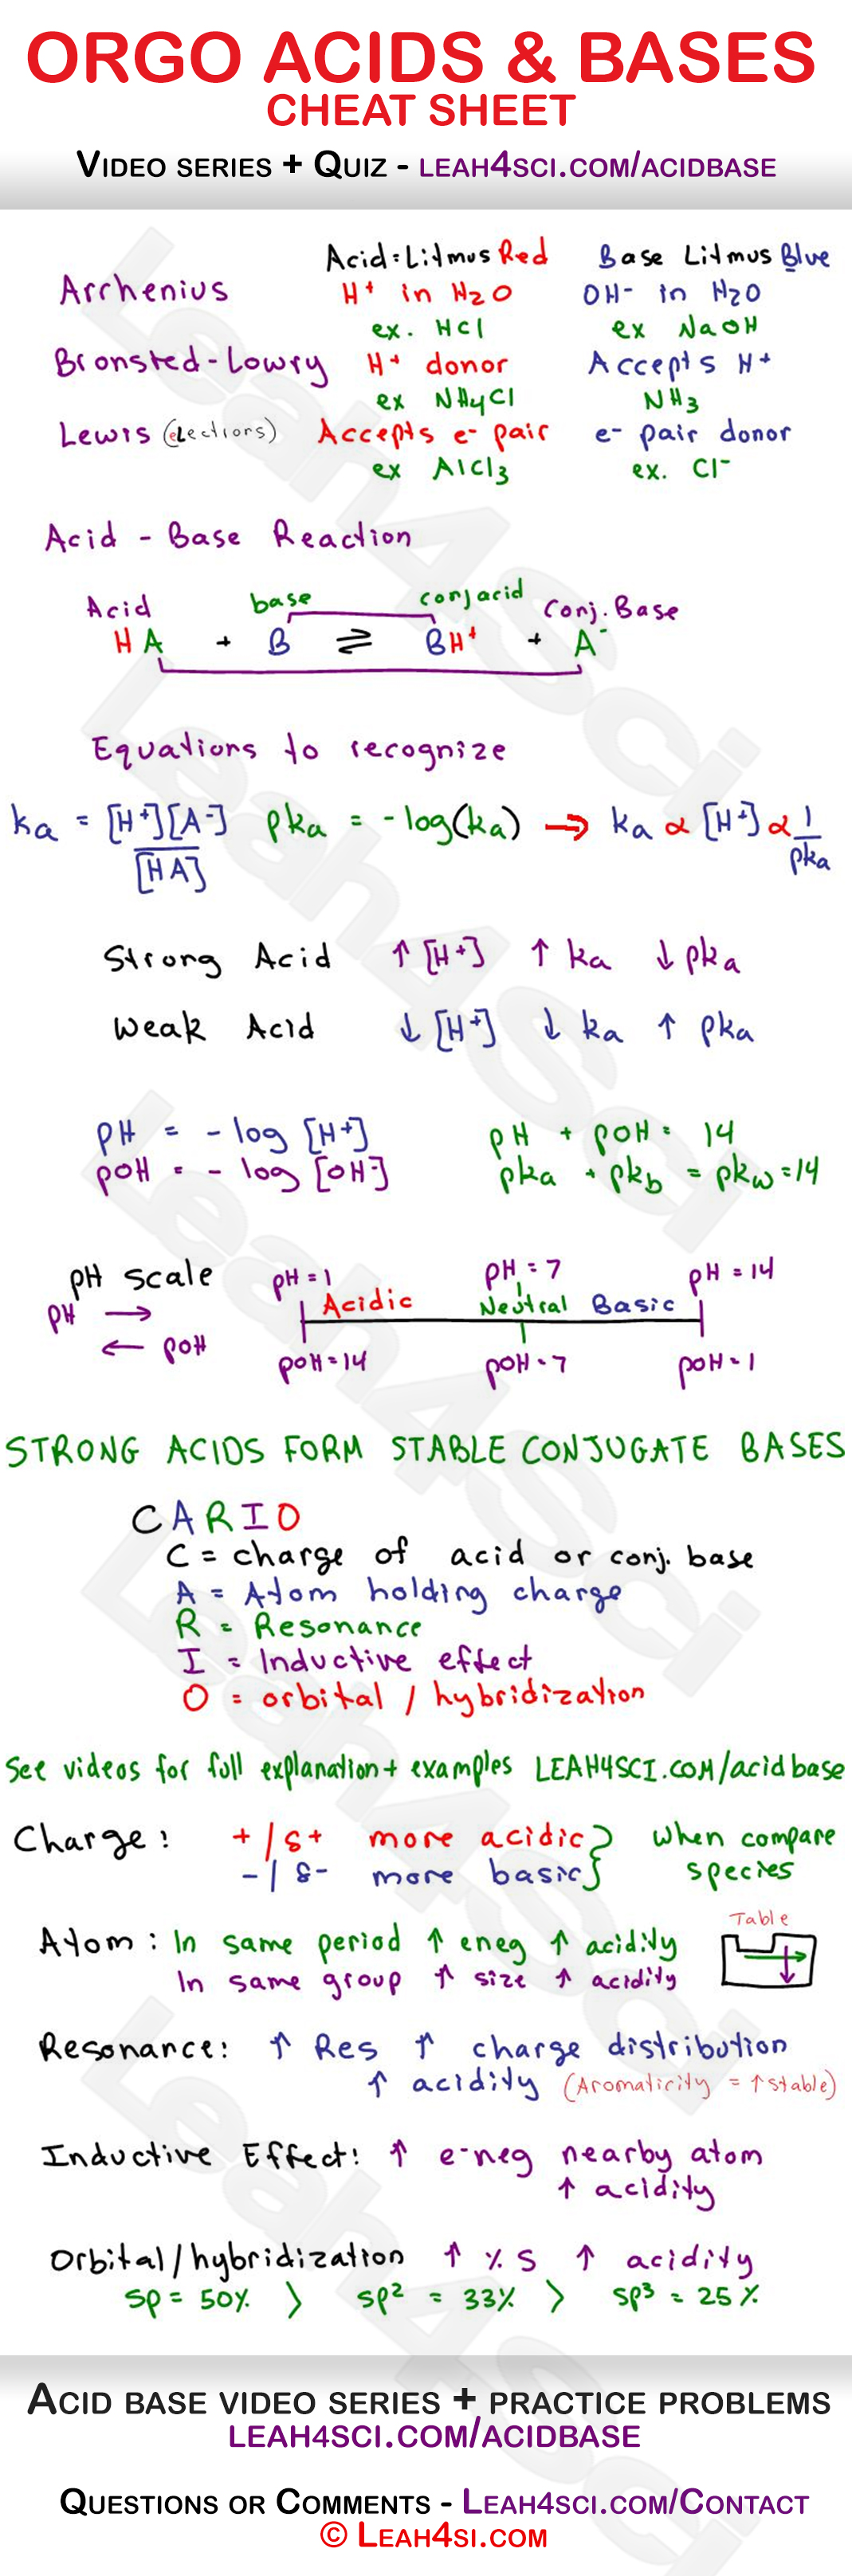 Acids and Bases in Organic Chemistry Cheat Sheet Study Guide -